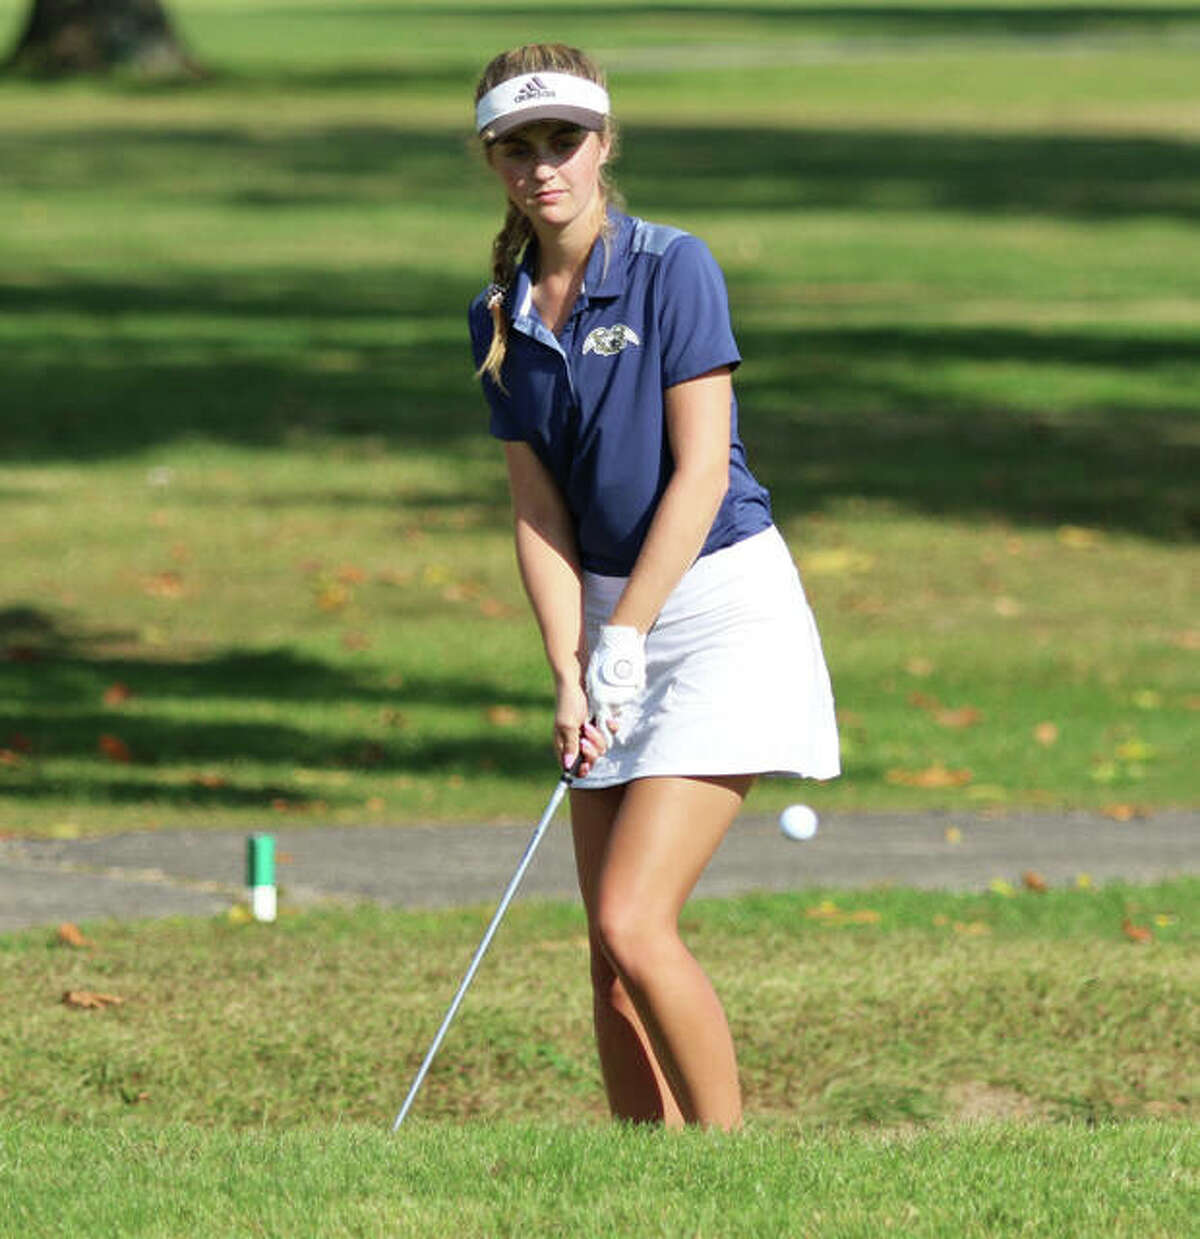 Father McGivney's Ellie Hyten chips her shot on to No. 3 green at Spencer T. Olin Golf Course during the Class 1A Marquette Catholic Regional.